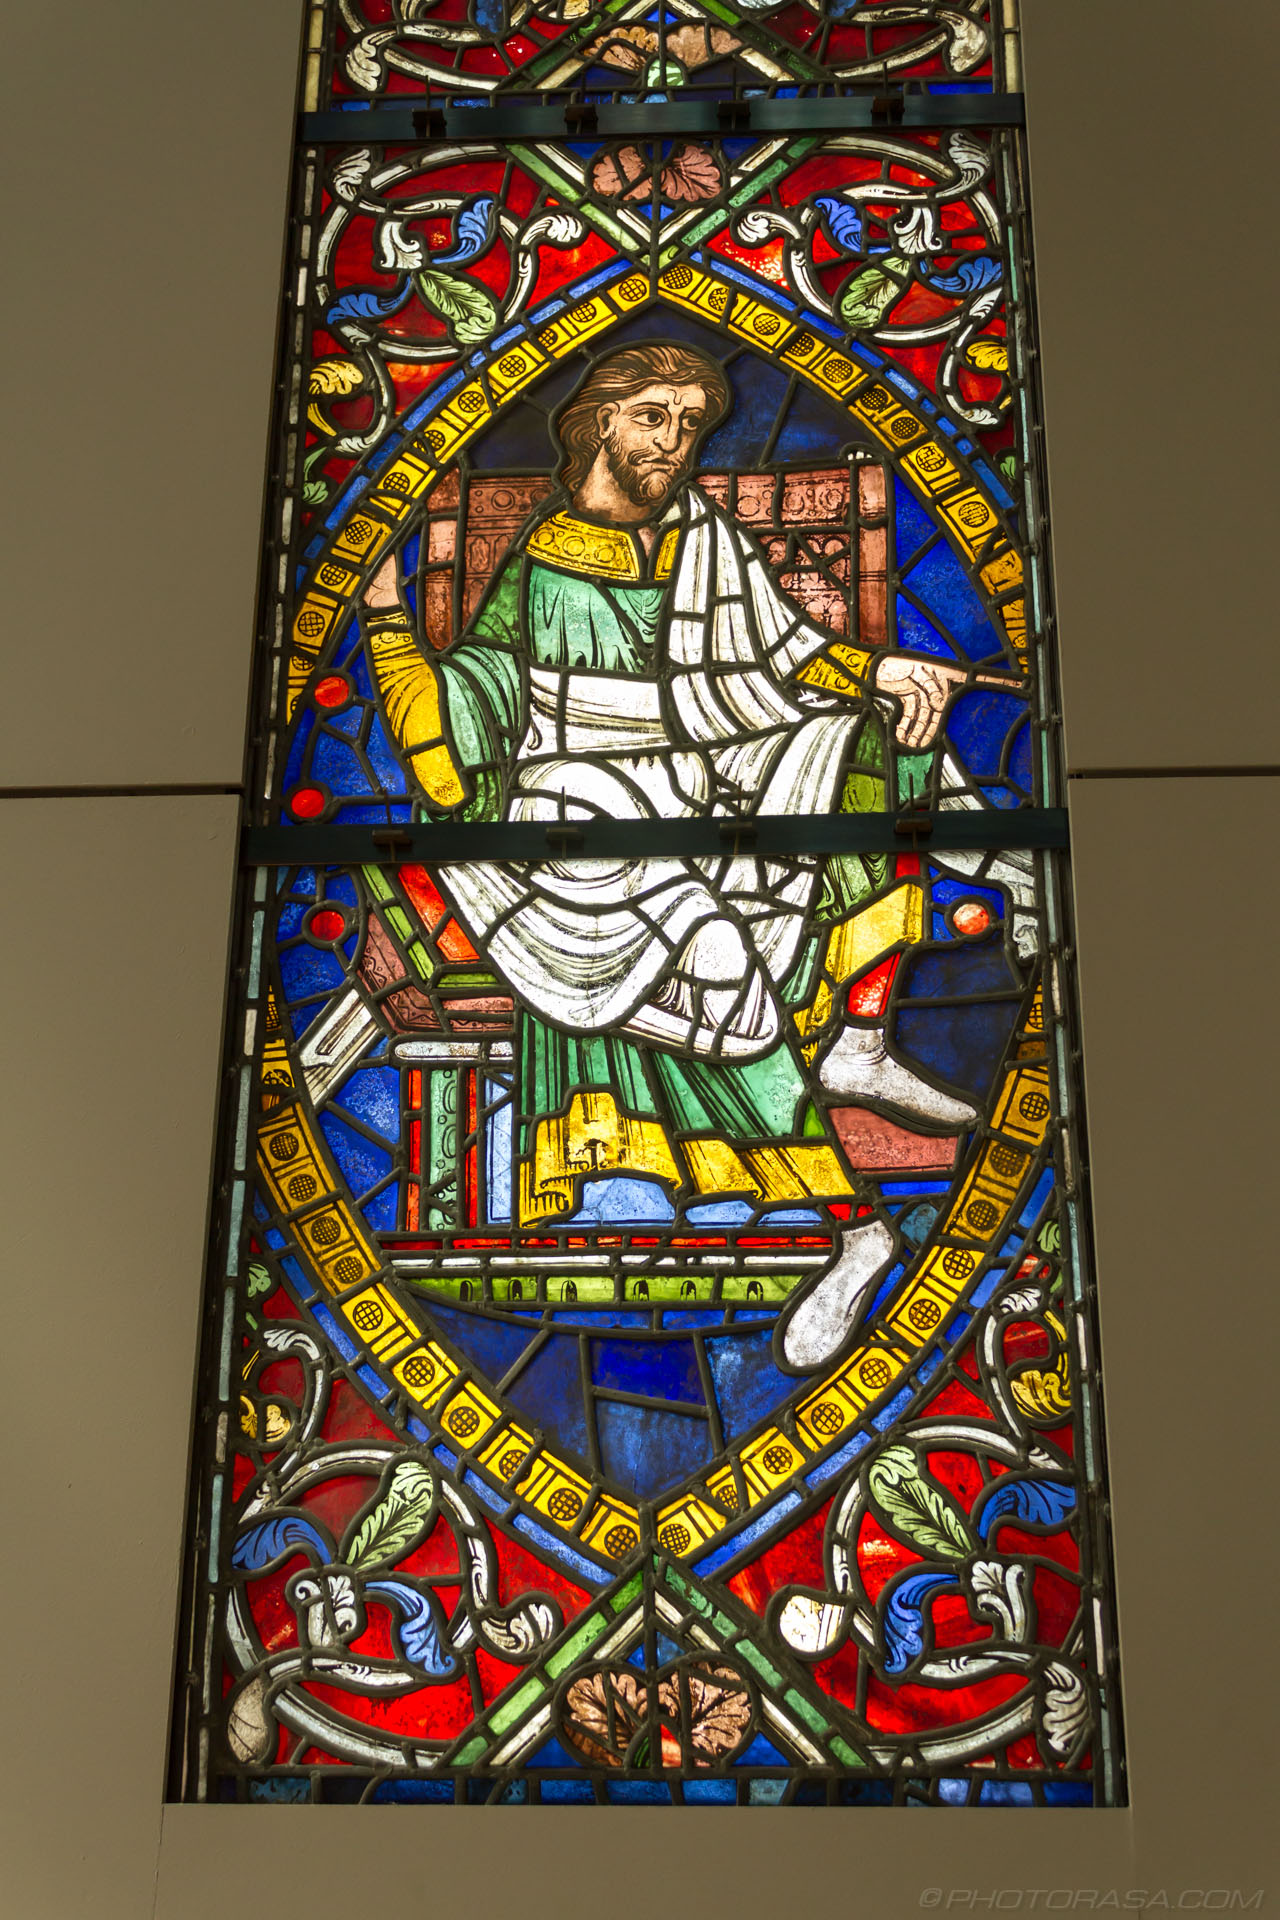 http://photorasa.com/genealogical-stained-glass-the-ancestors-of-jesus/josiah-stained-glass/